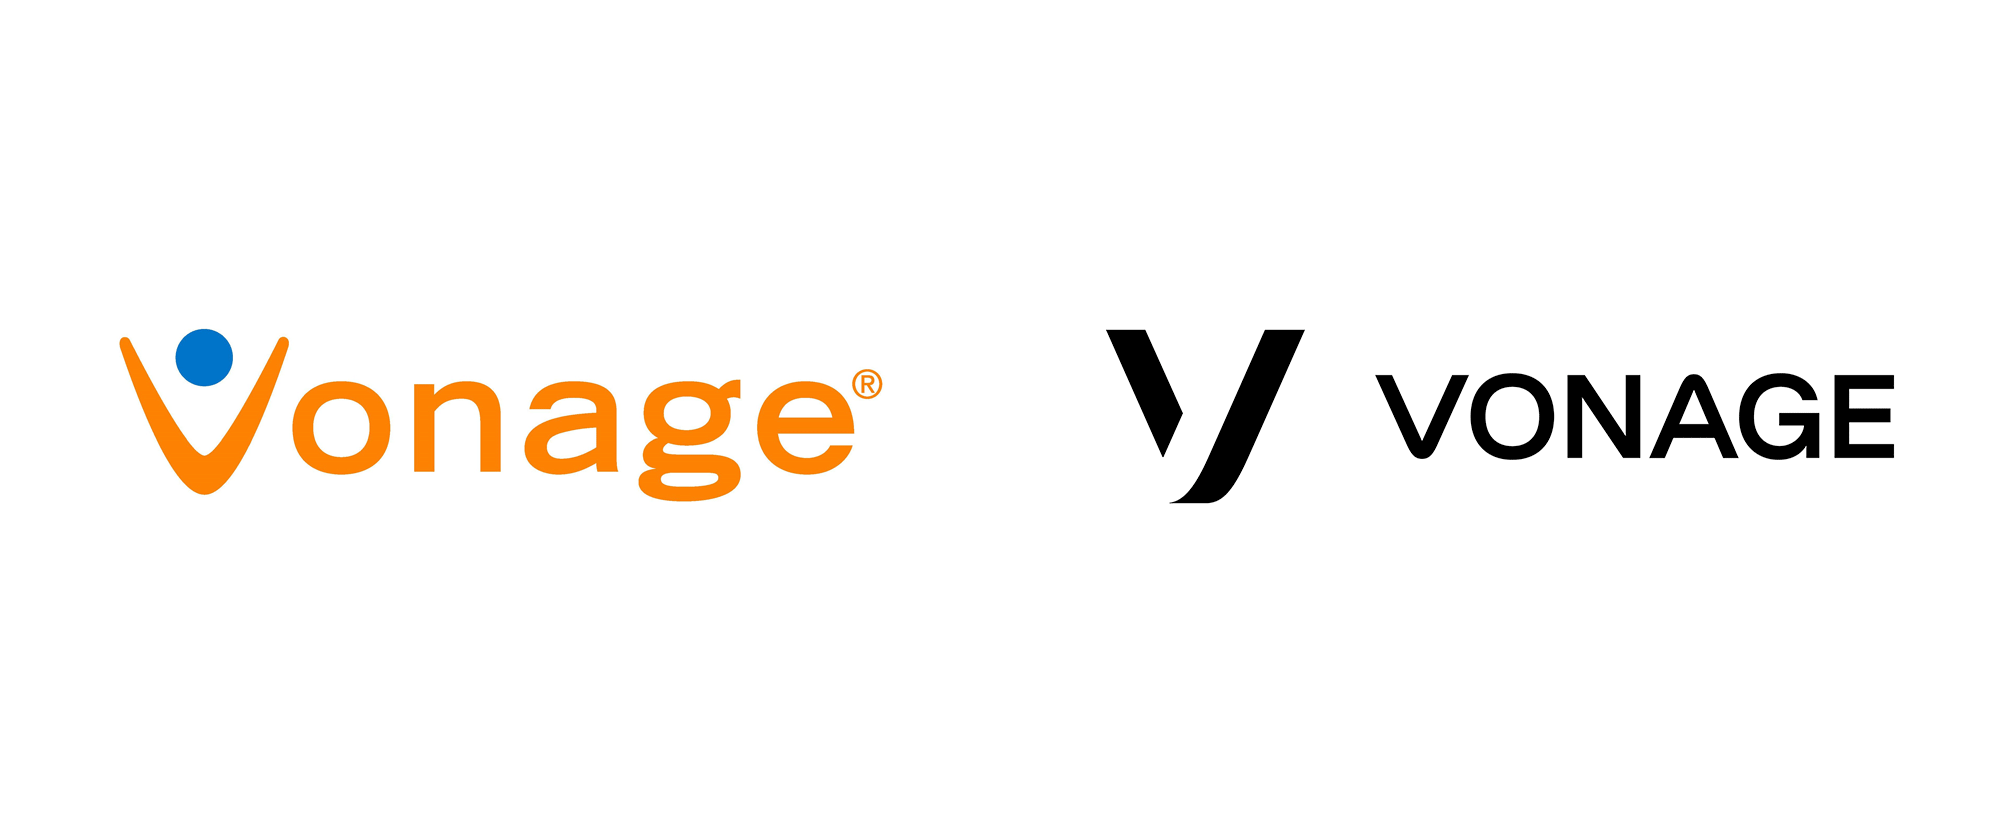 New Logo and Identity for Vonage by Wolff Olins